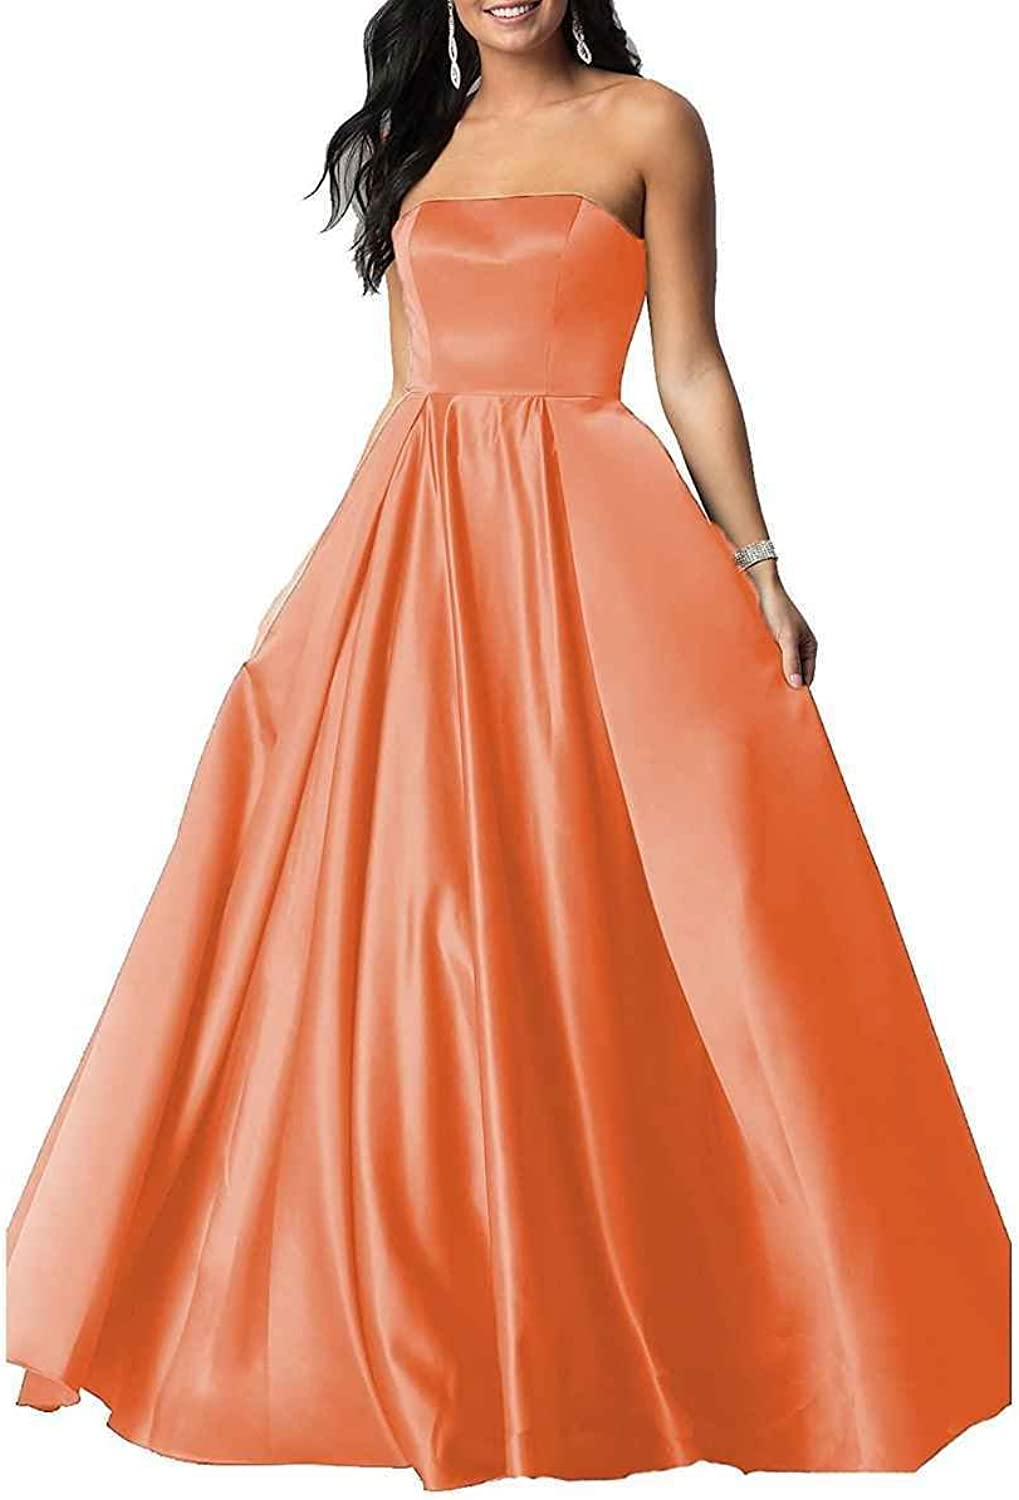 LastBridal Women A Line Satin Strapless Prom Dresses 2018 Long Formal Evening Party Gowns LB0099